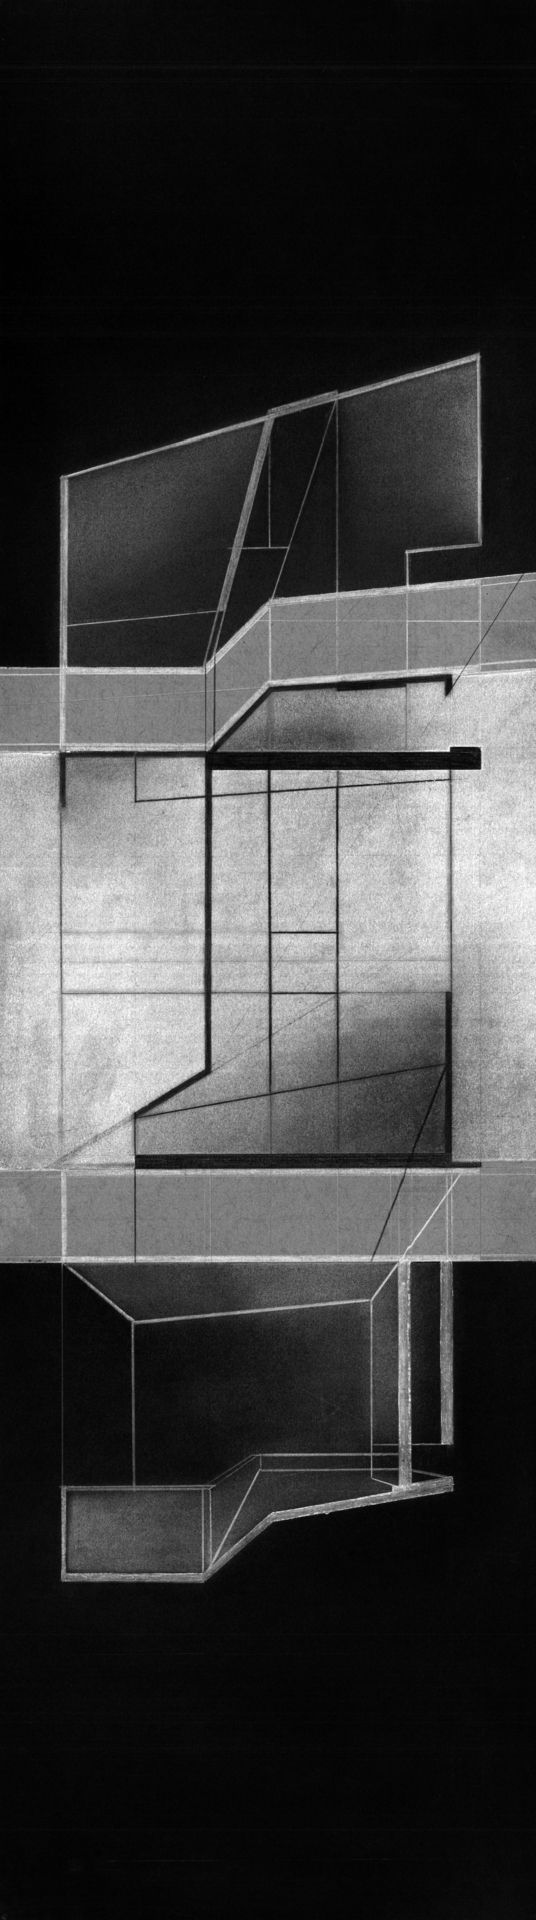 The ARCHive: Josh Frank  #drawing #architecture #graphics